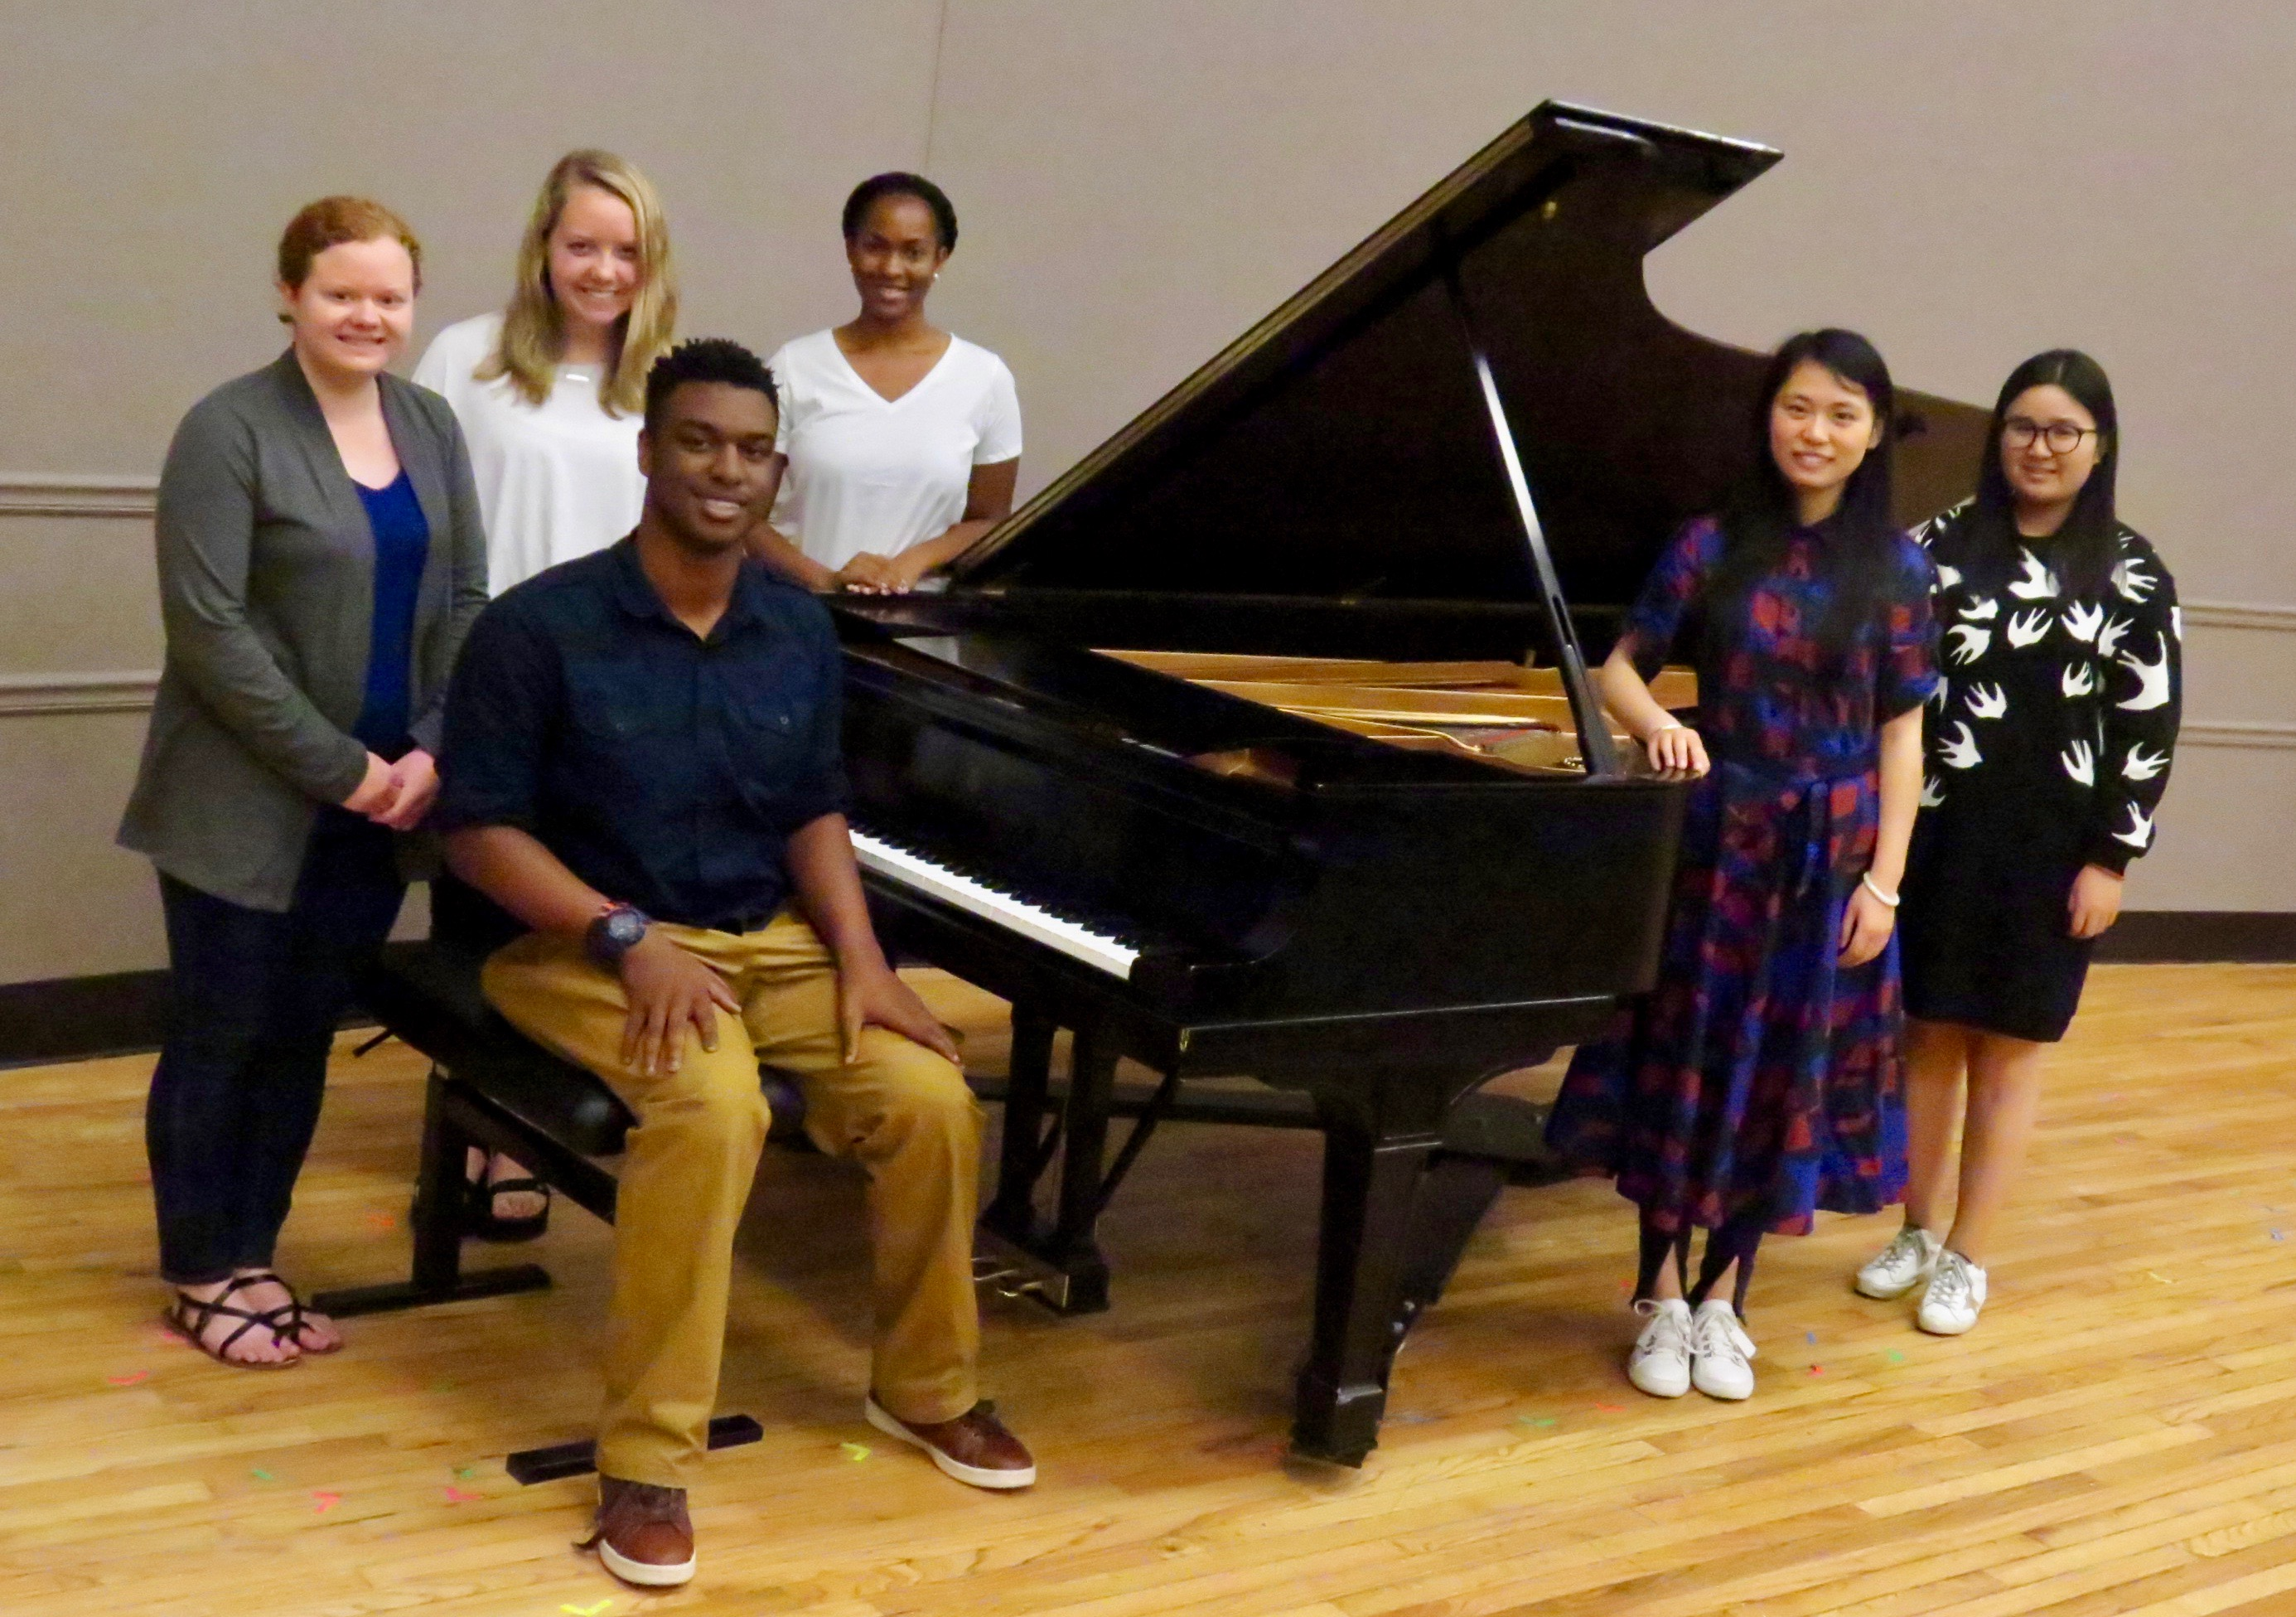 Auburn University Piano Studio, Spring 2018